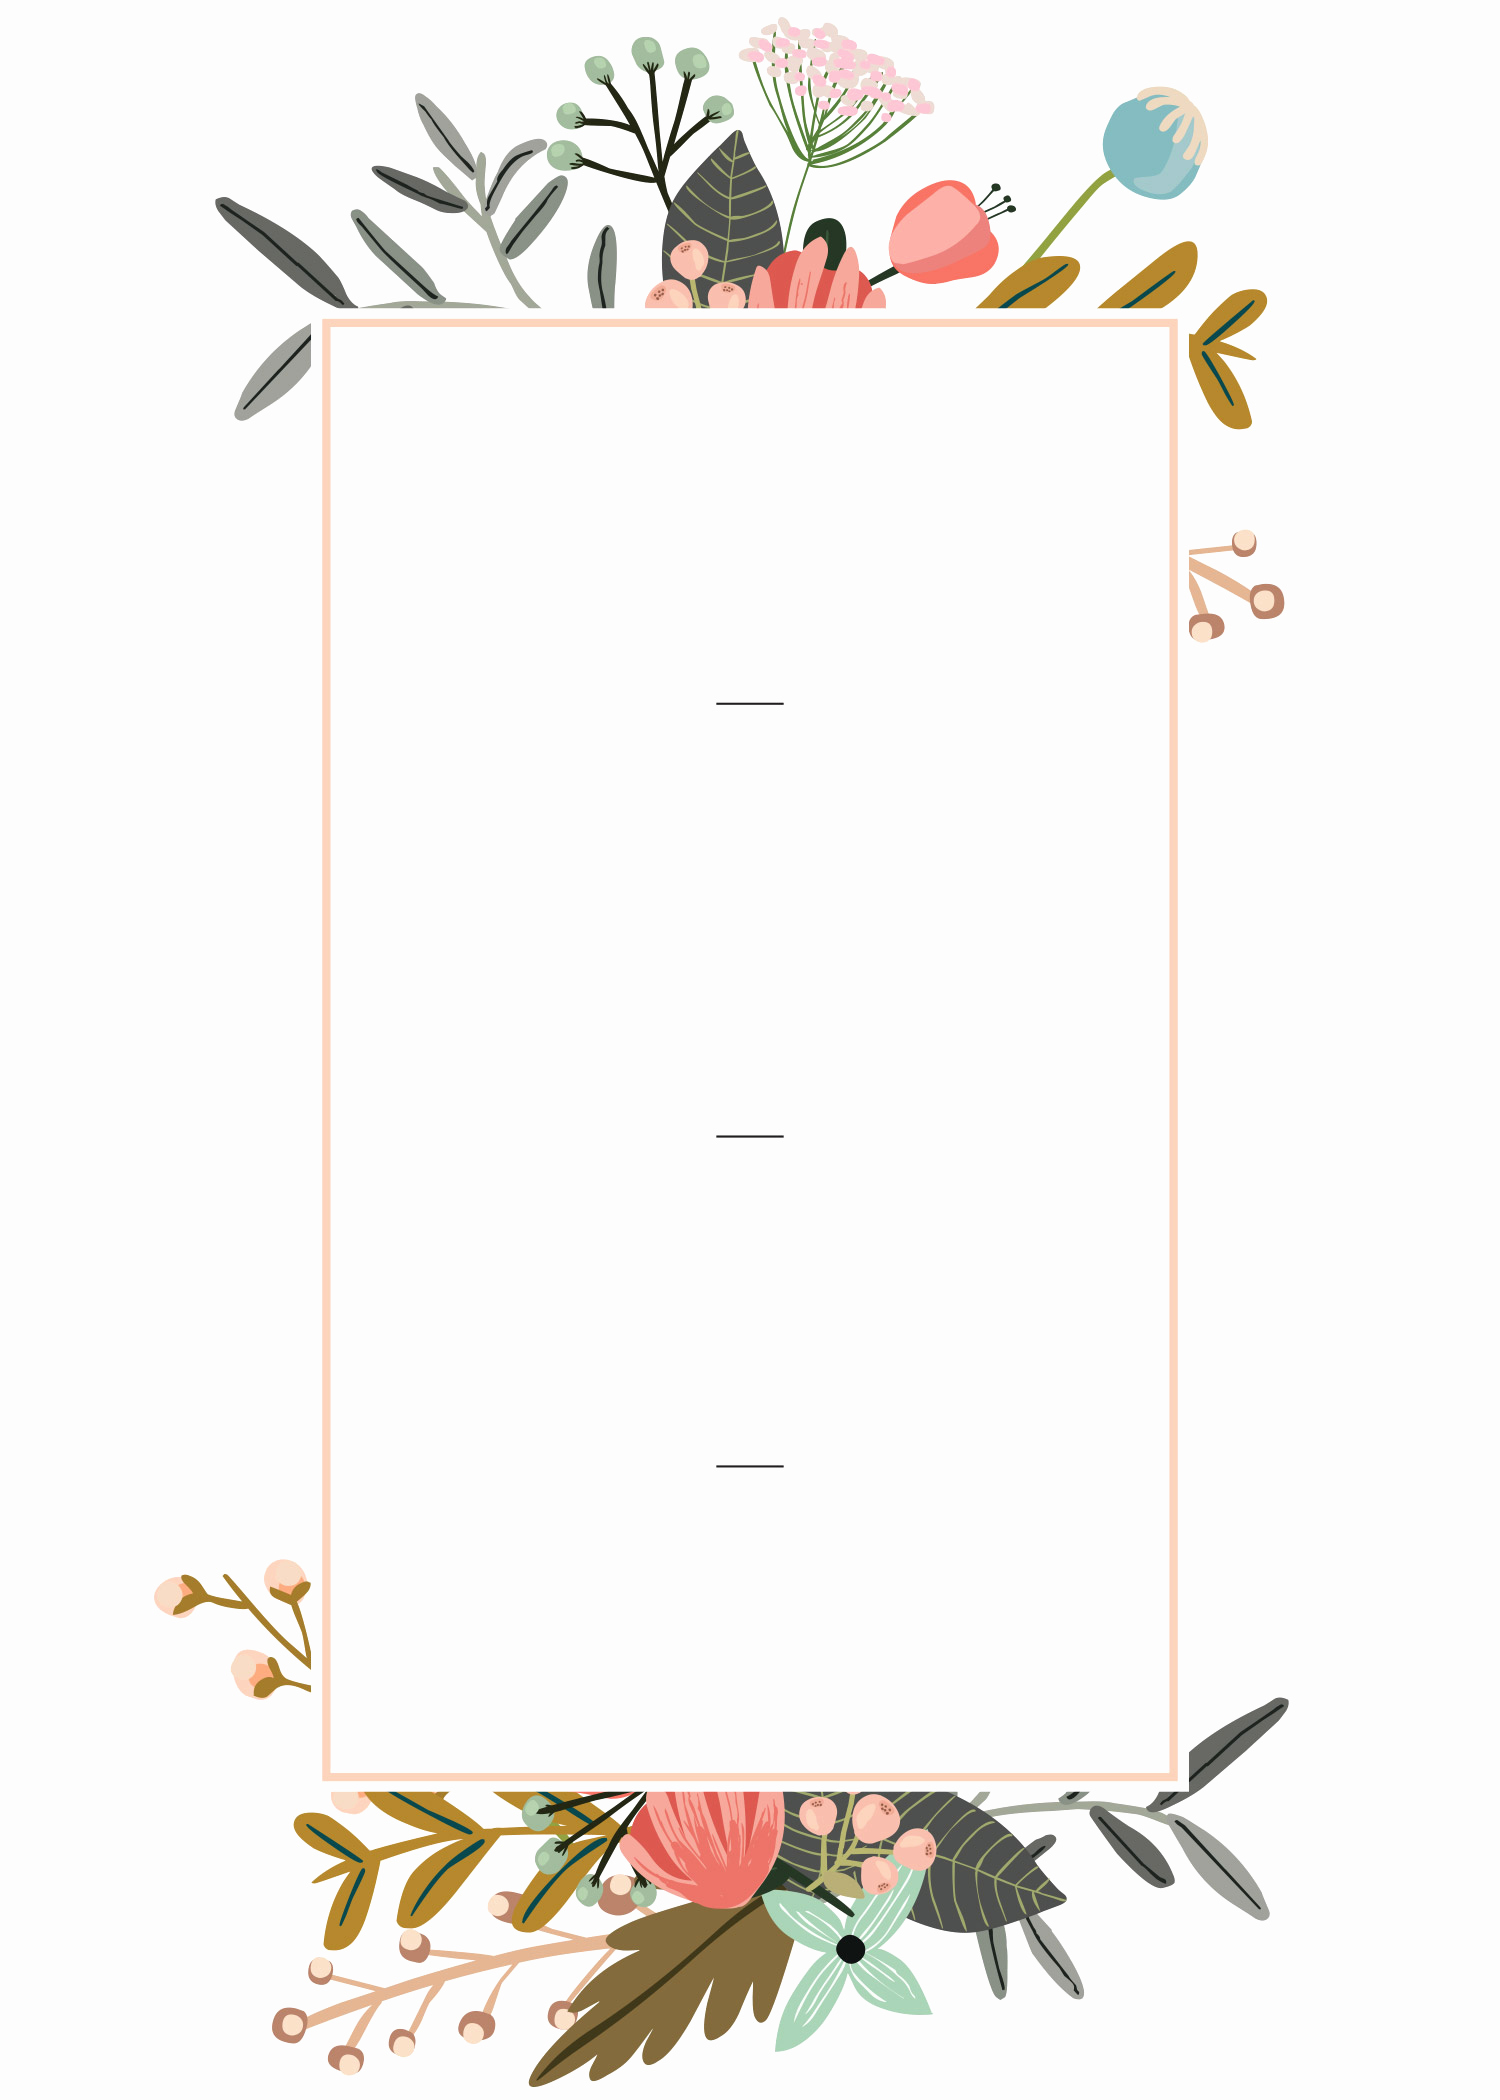 Free Wedding Invitation Templates Downloads New Editable Wedding Invitation Templates for the Perfect Card